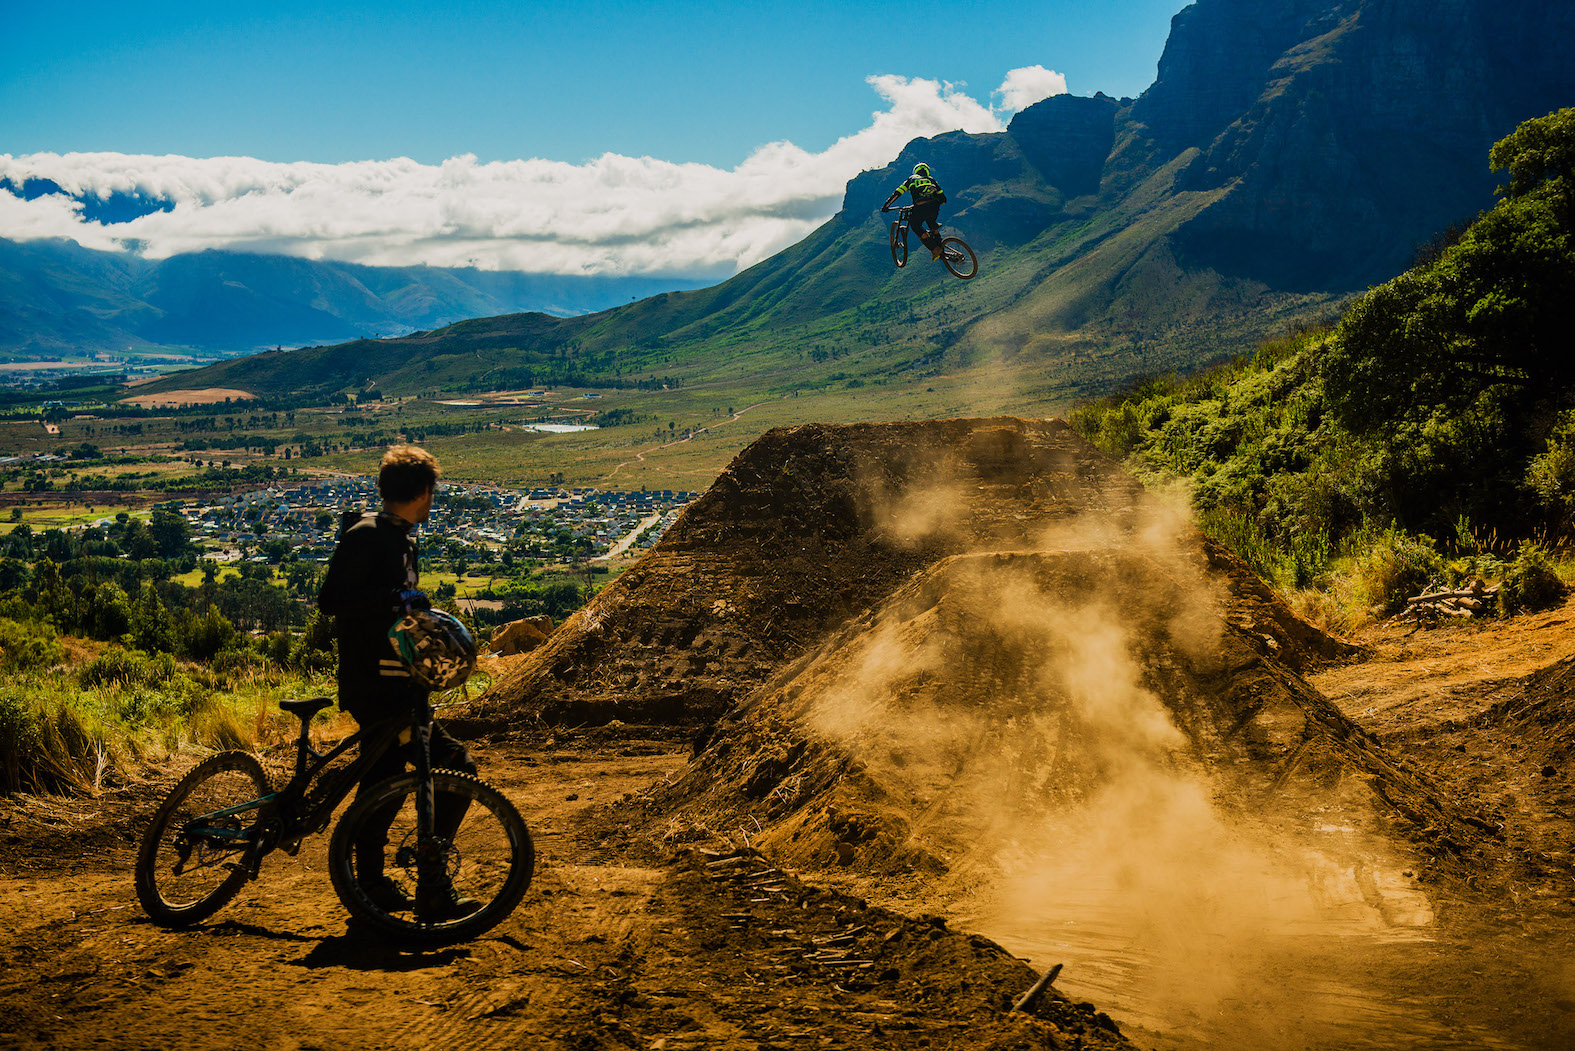 Testing the massive jump on the new DarkFEST 2018 line in Stellenbosch